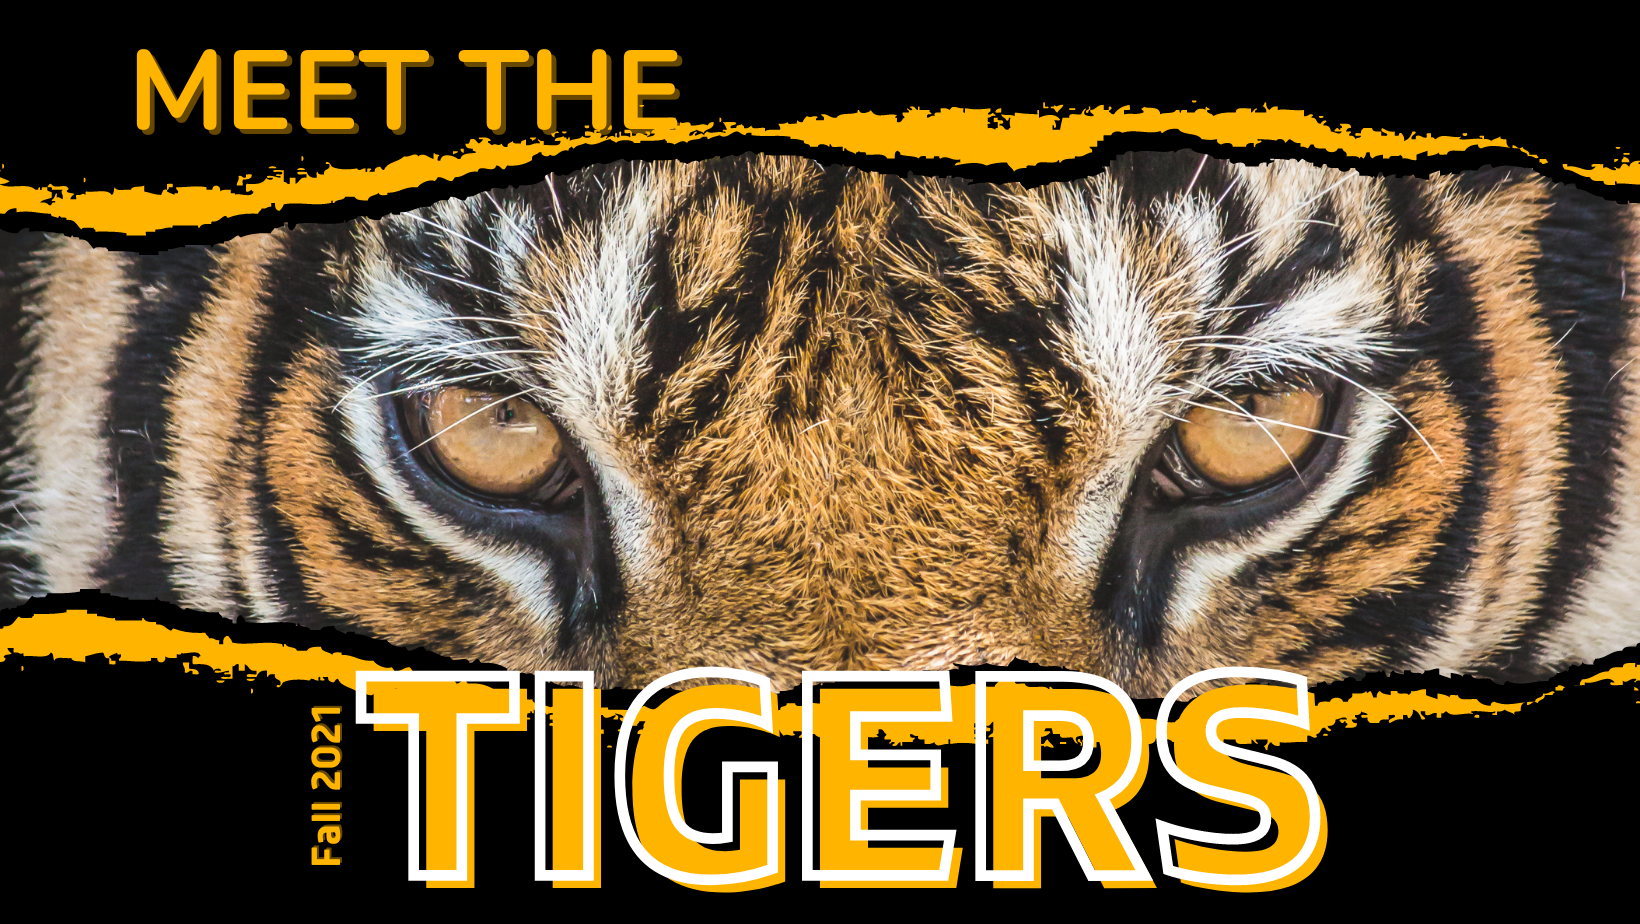 Meet the tigers graphic